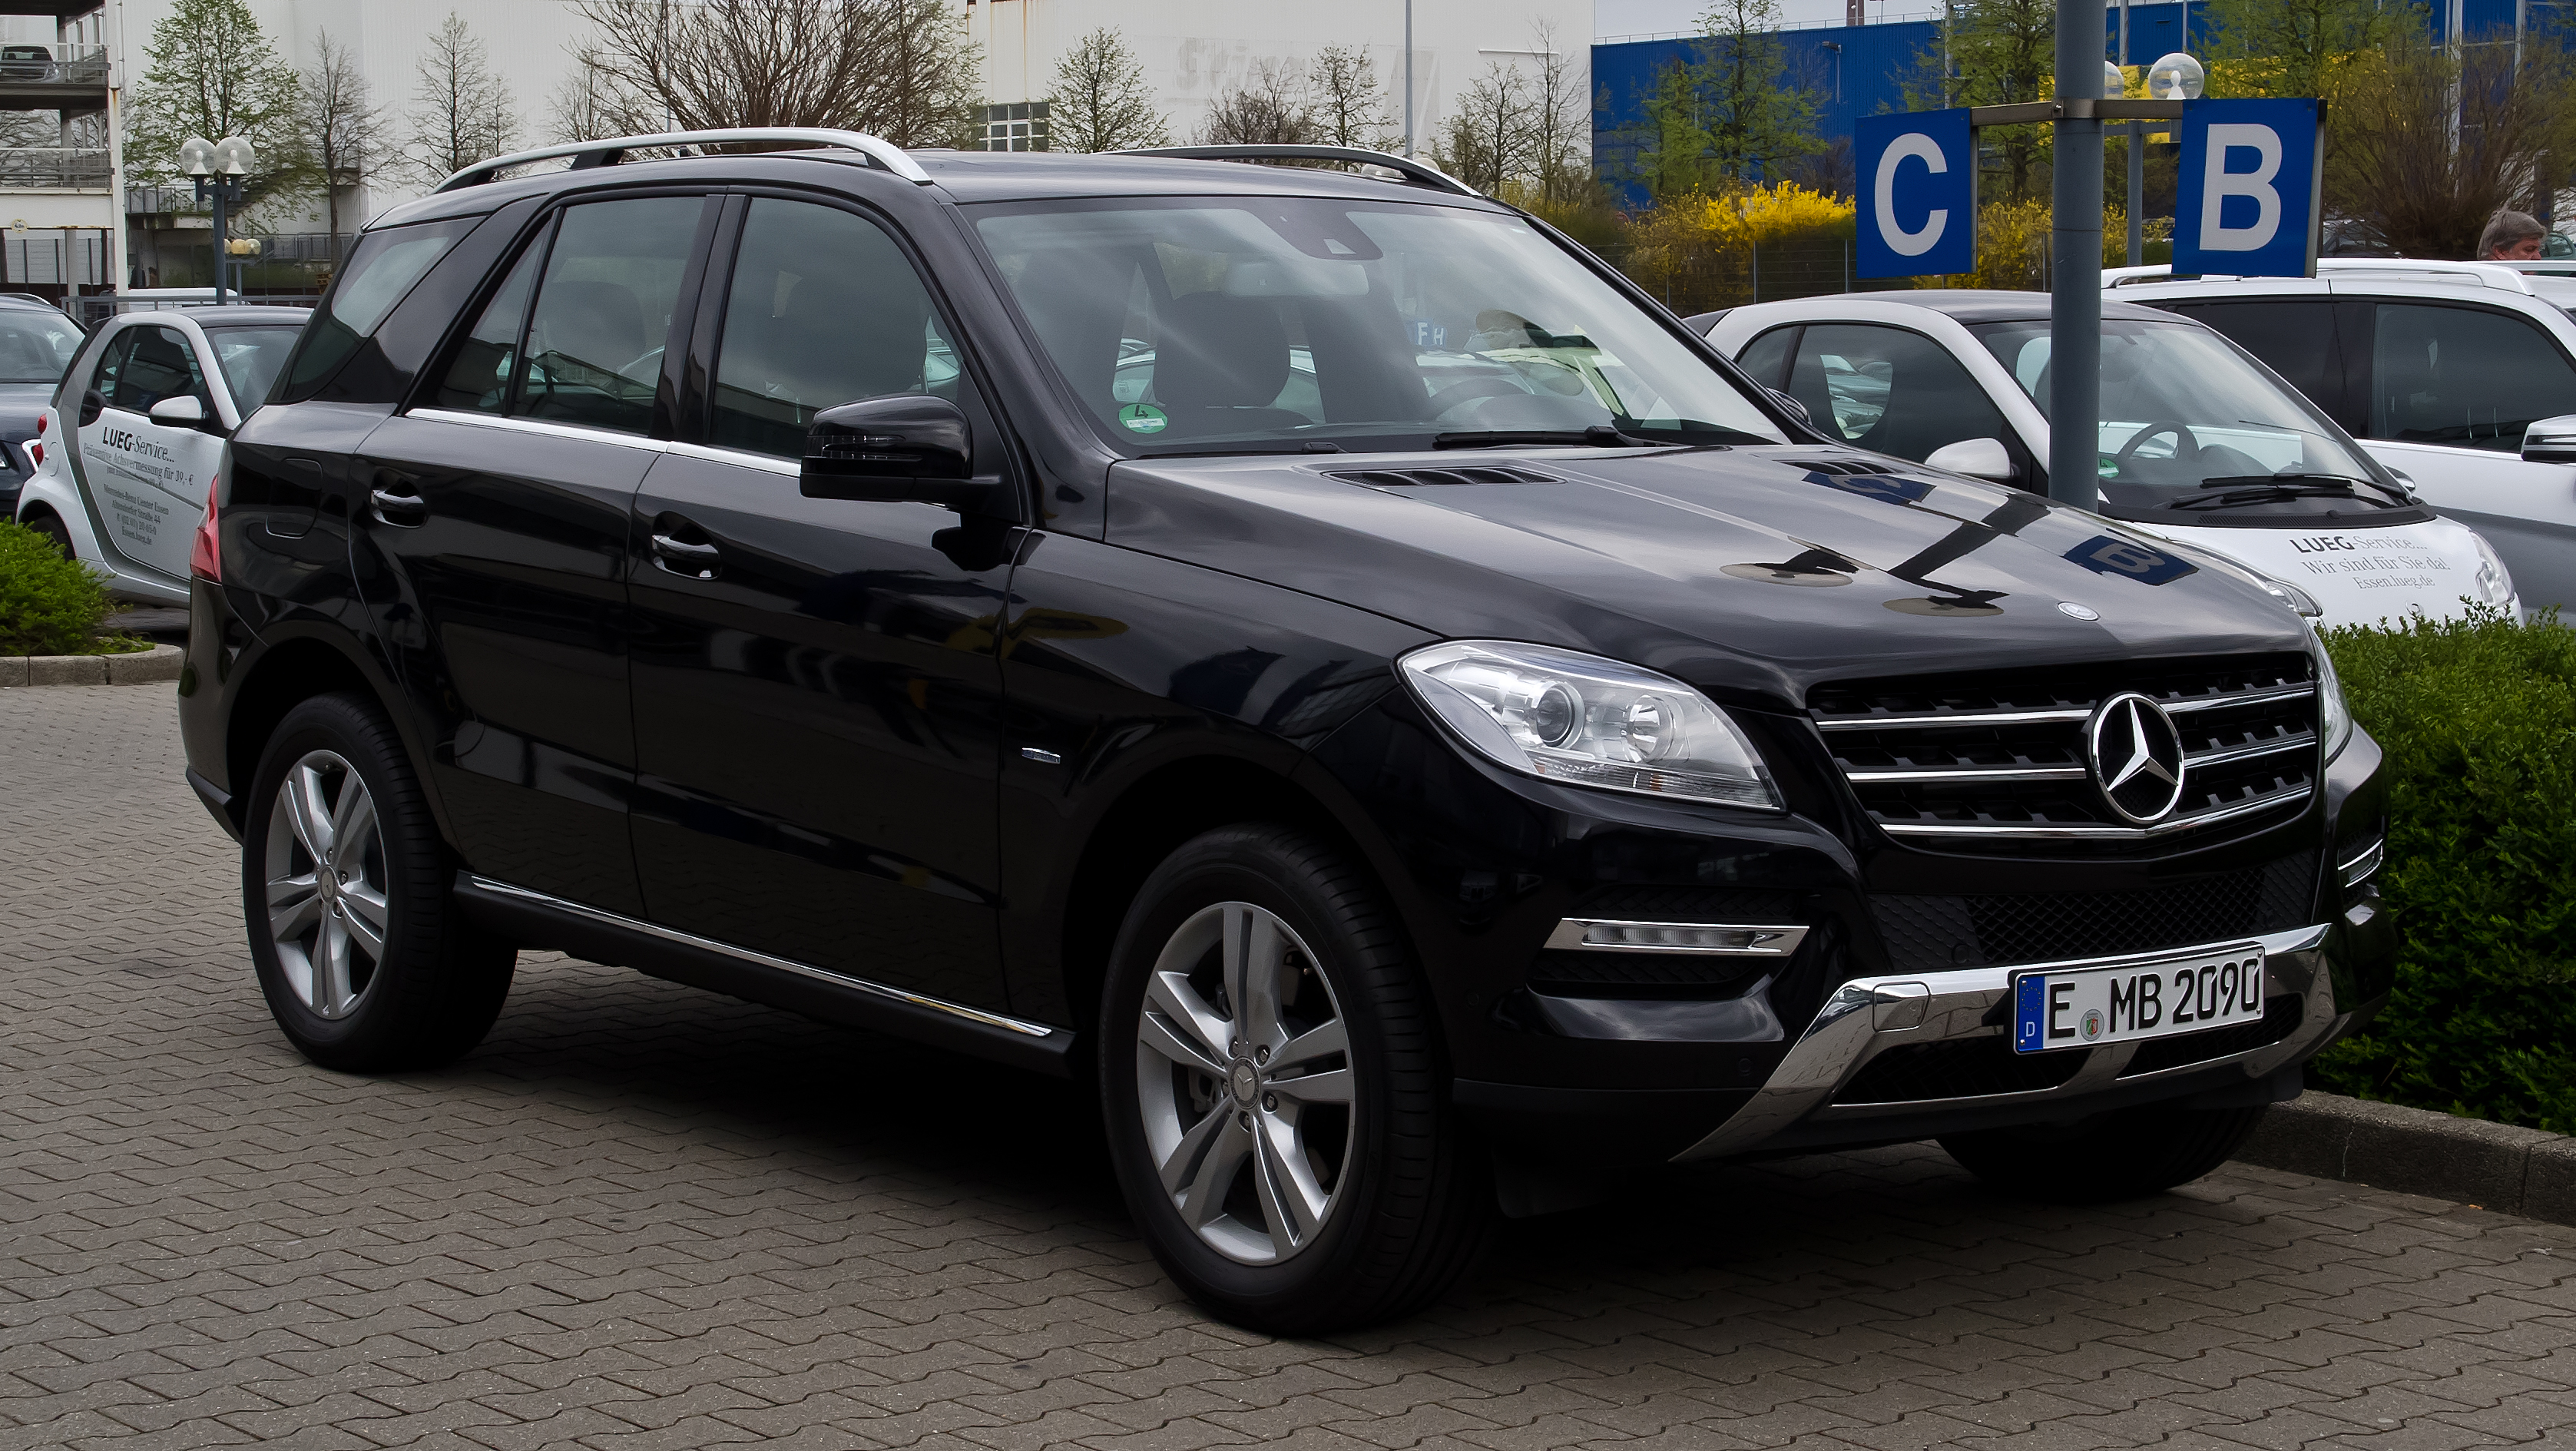 mercedes benz ml 250 bluetec 4matic w 166 frontansicht 1 april 2012. Black Bedroom Furniture Sets. Home Design Ideas